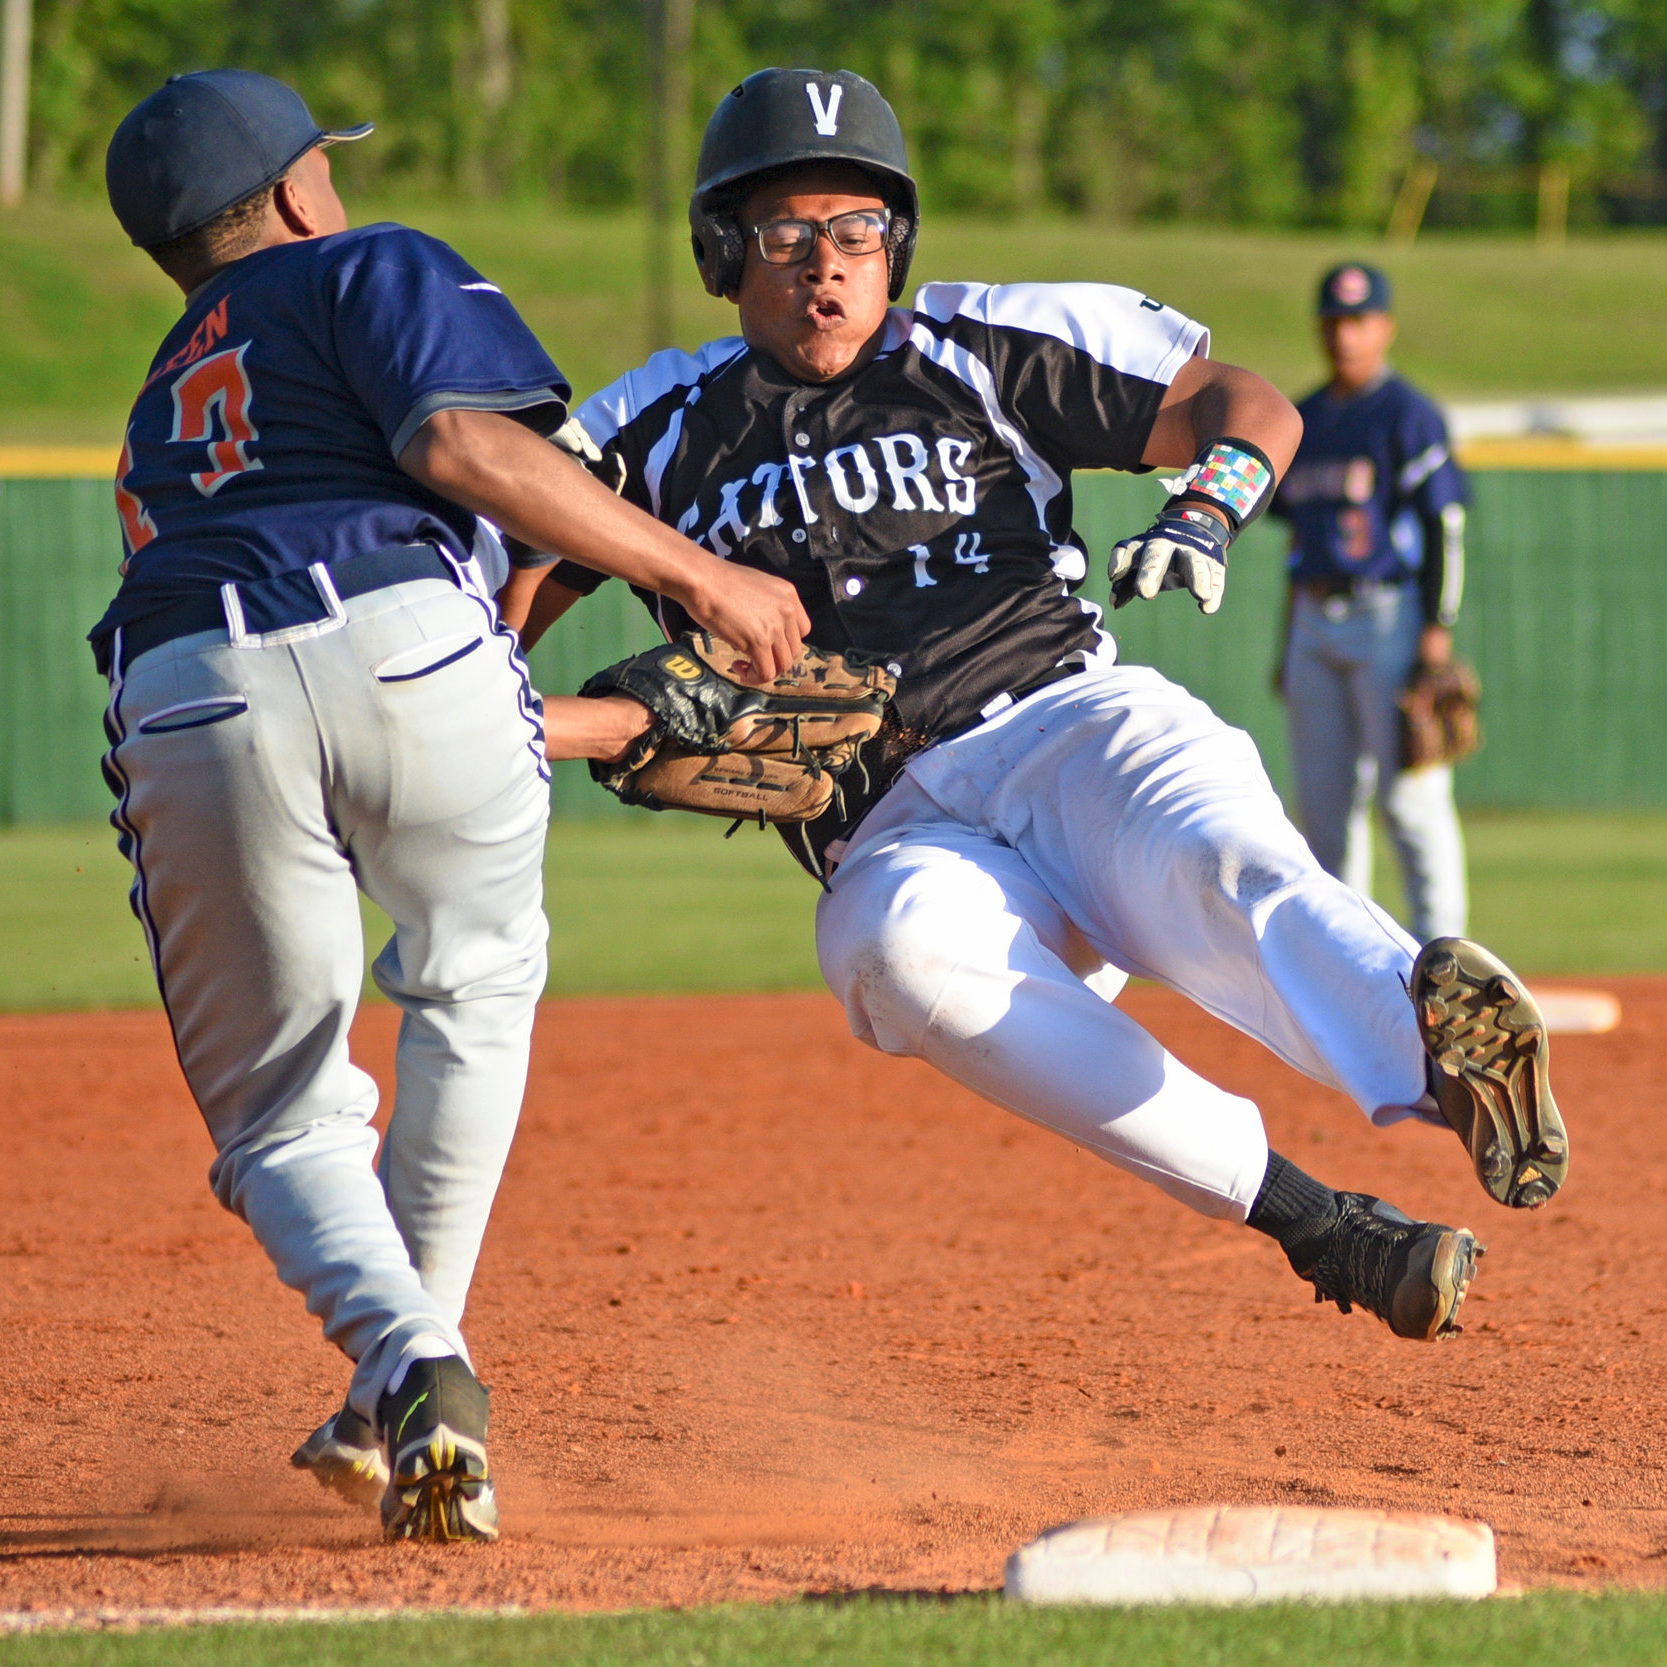 Vicksburg's Jordan Miller (14) is tagged out by Callaway's Kemorian Herring (17) while sliding into third base during their game Tuesday at Bazinsky Field. The Gators defeated the Chargers 17-7. (Courtland Wells/The Vicksburg Post)